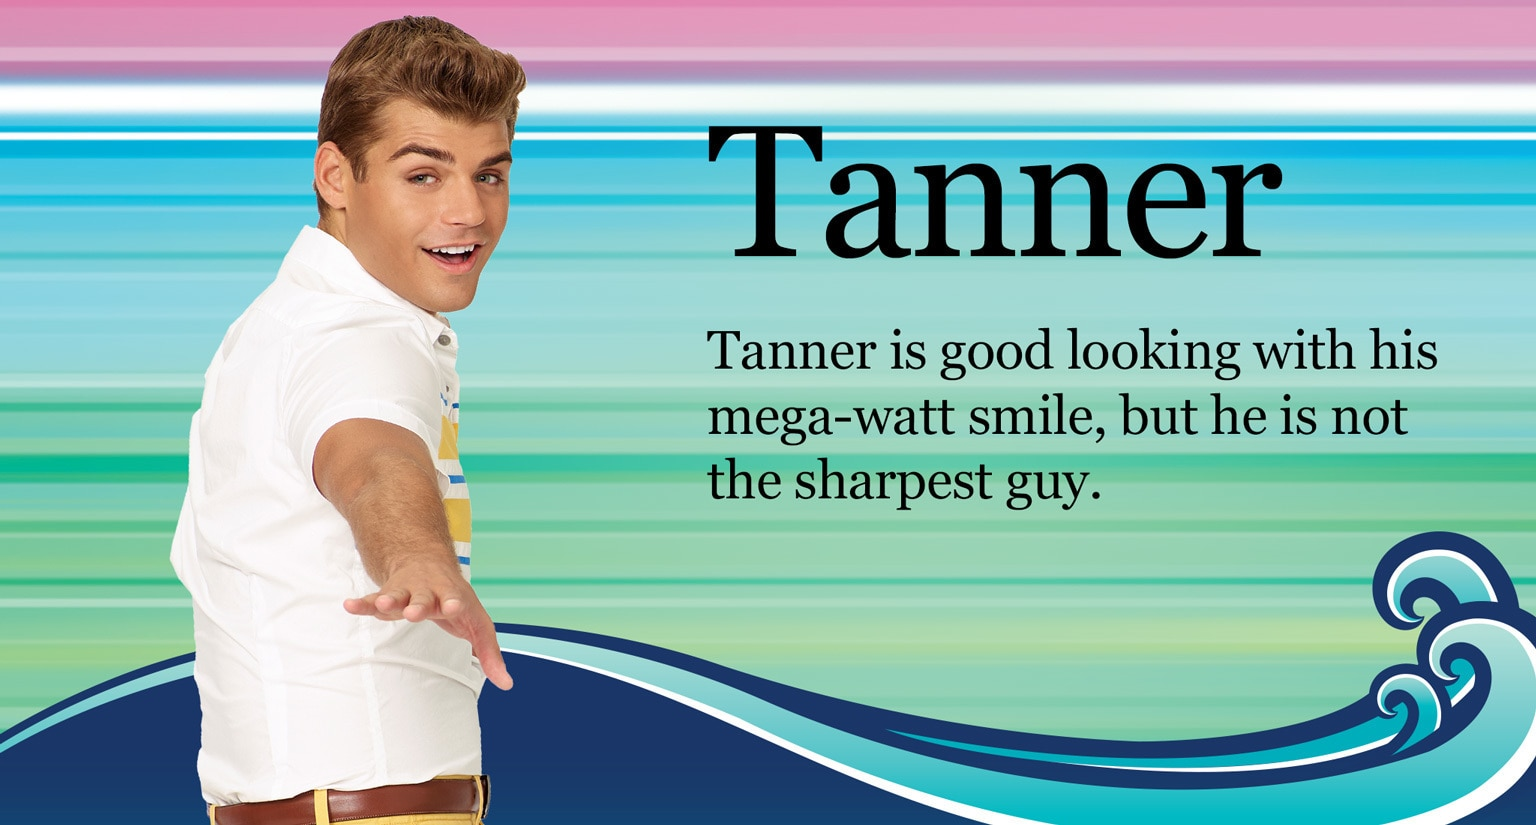 Teen Beach 2 - Show Home - Tanner Character Hero